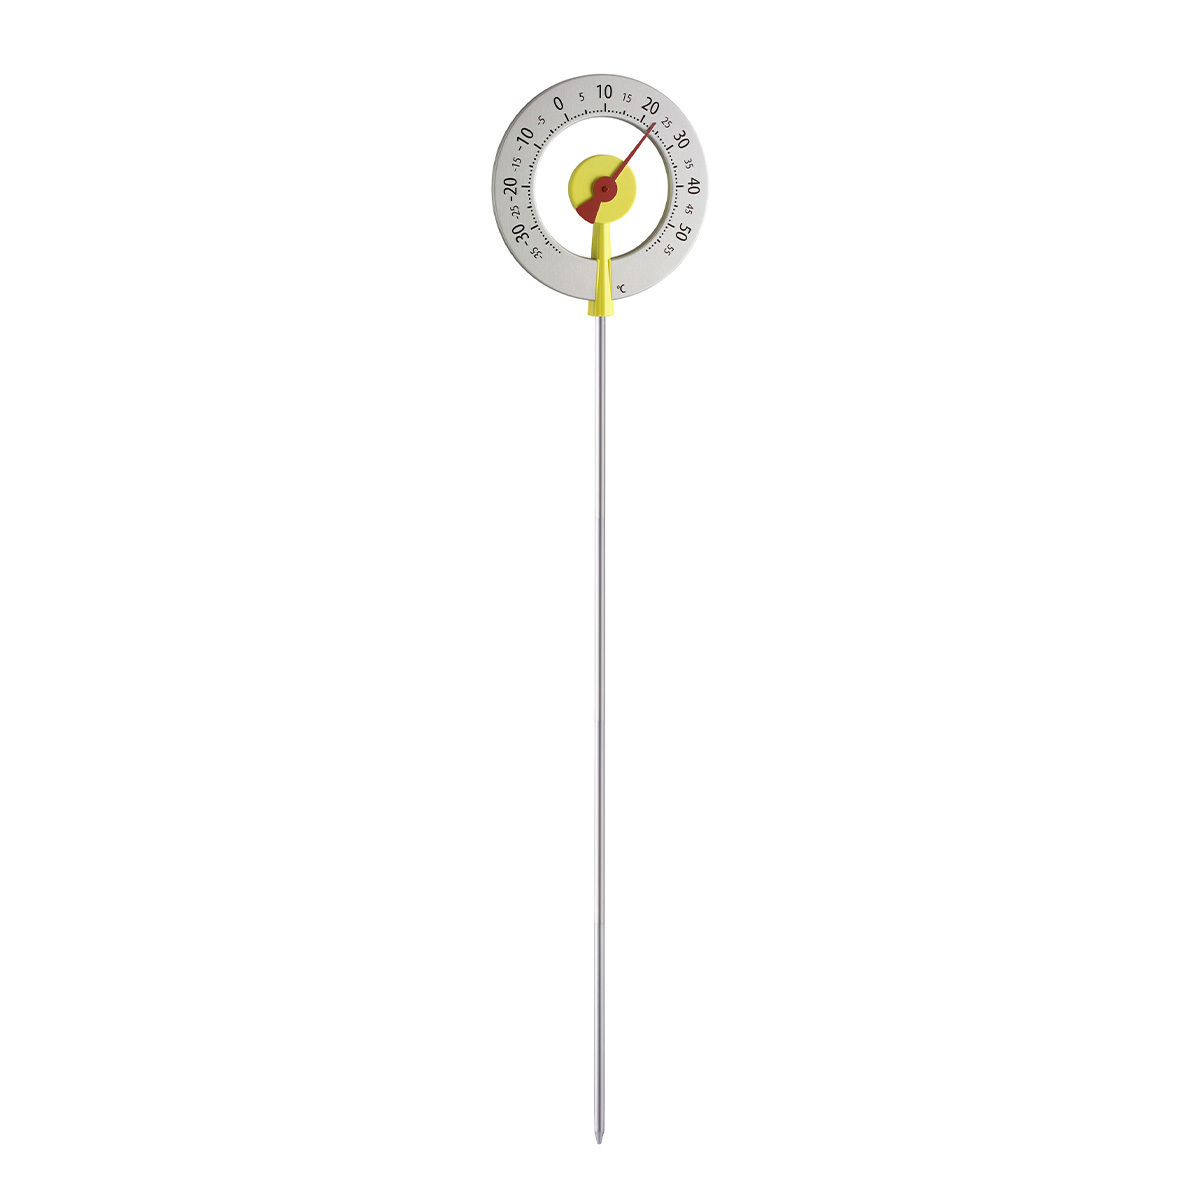 12-2055-07-analoges-design-gartenthermometer-lollipop1-1200x1200px.jpg